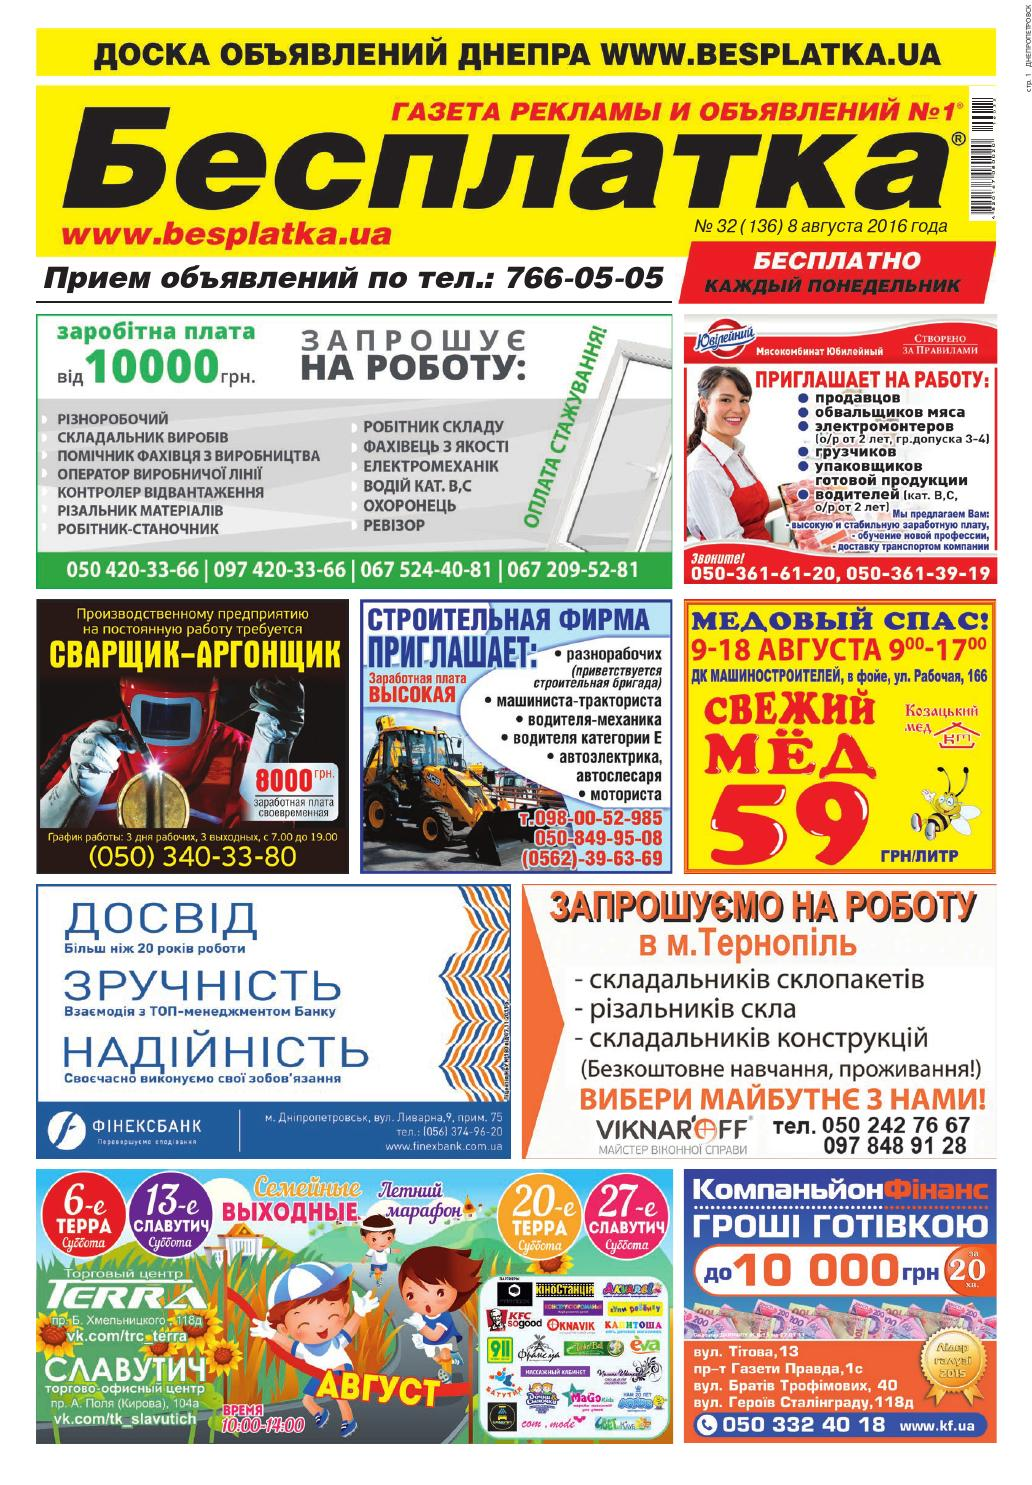 Besplatka  32 Днепр by besplatka ukraine - issuu 72eb1eb7637